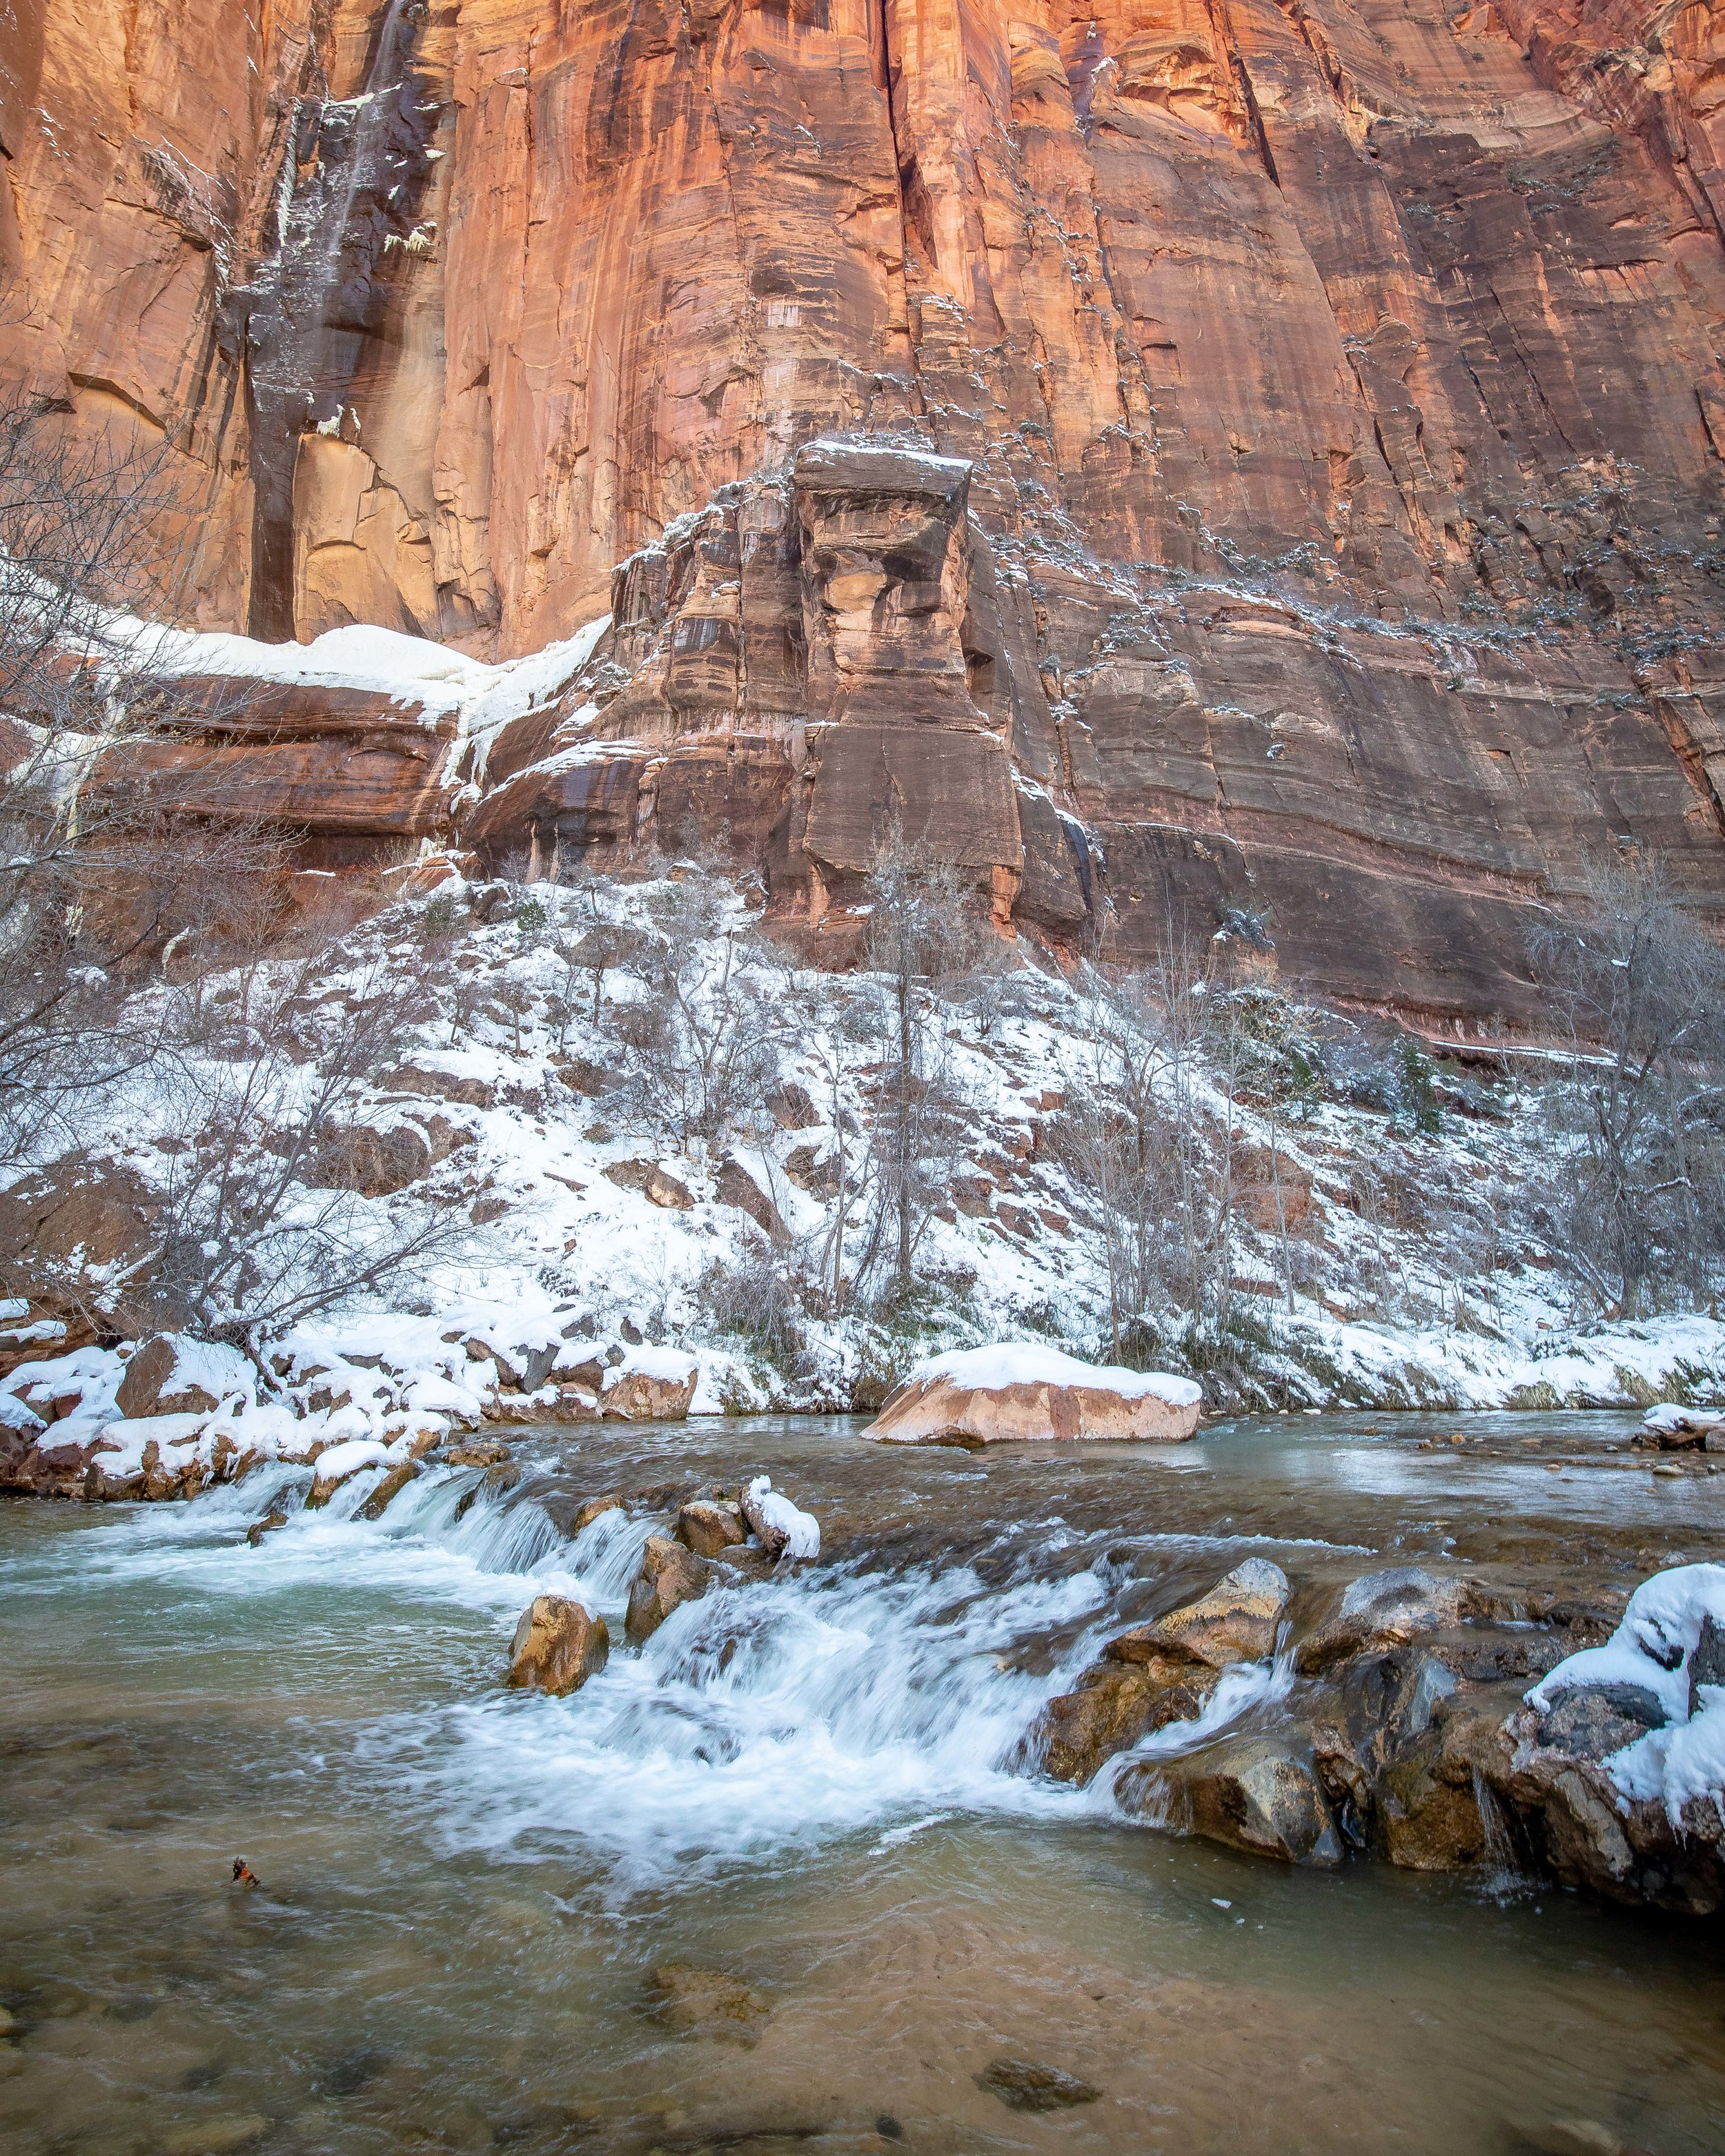 The Riverside Walk - Zion National Park hikes